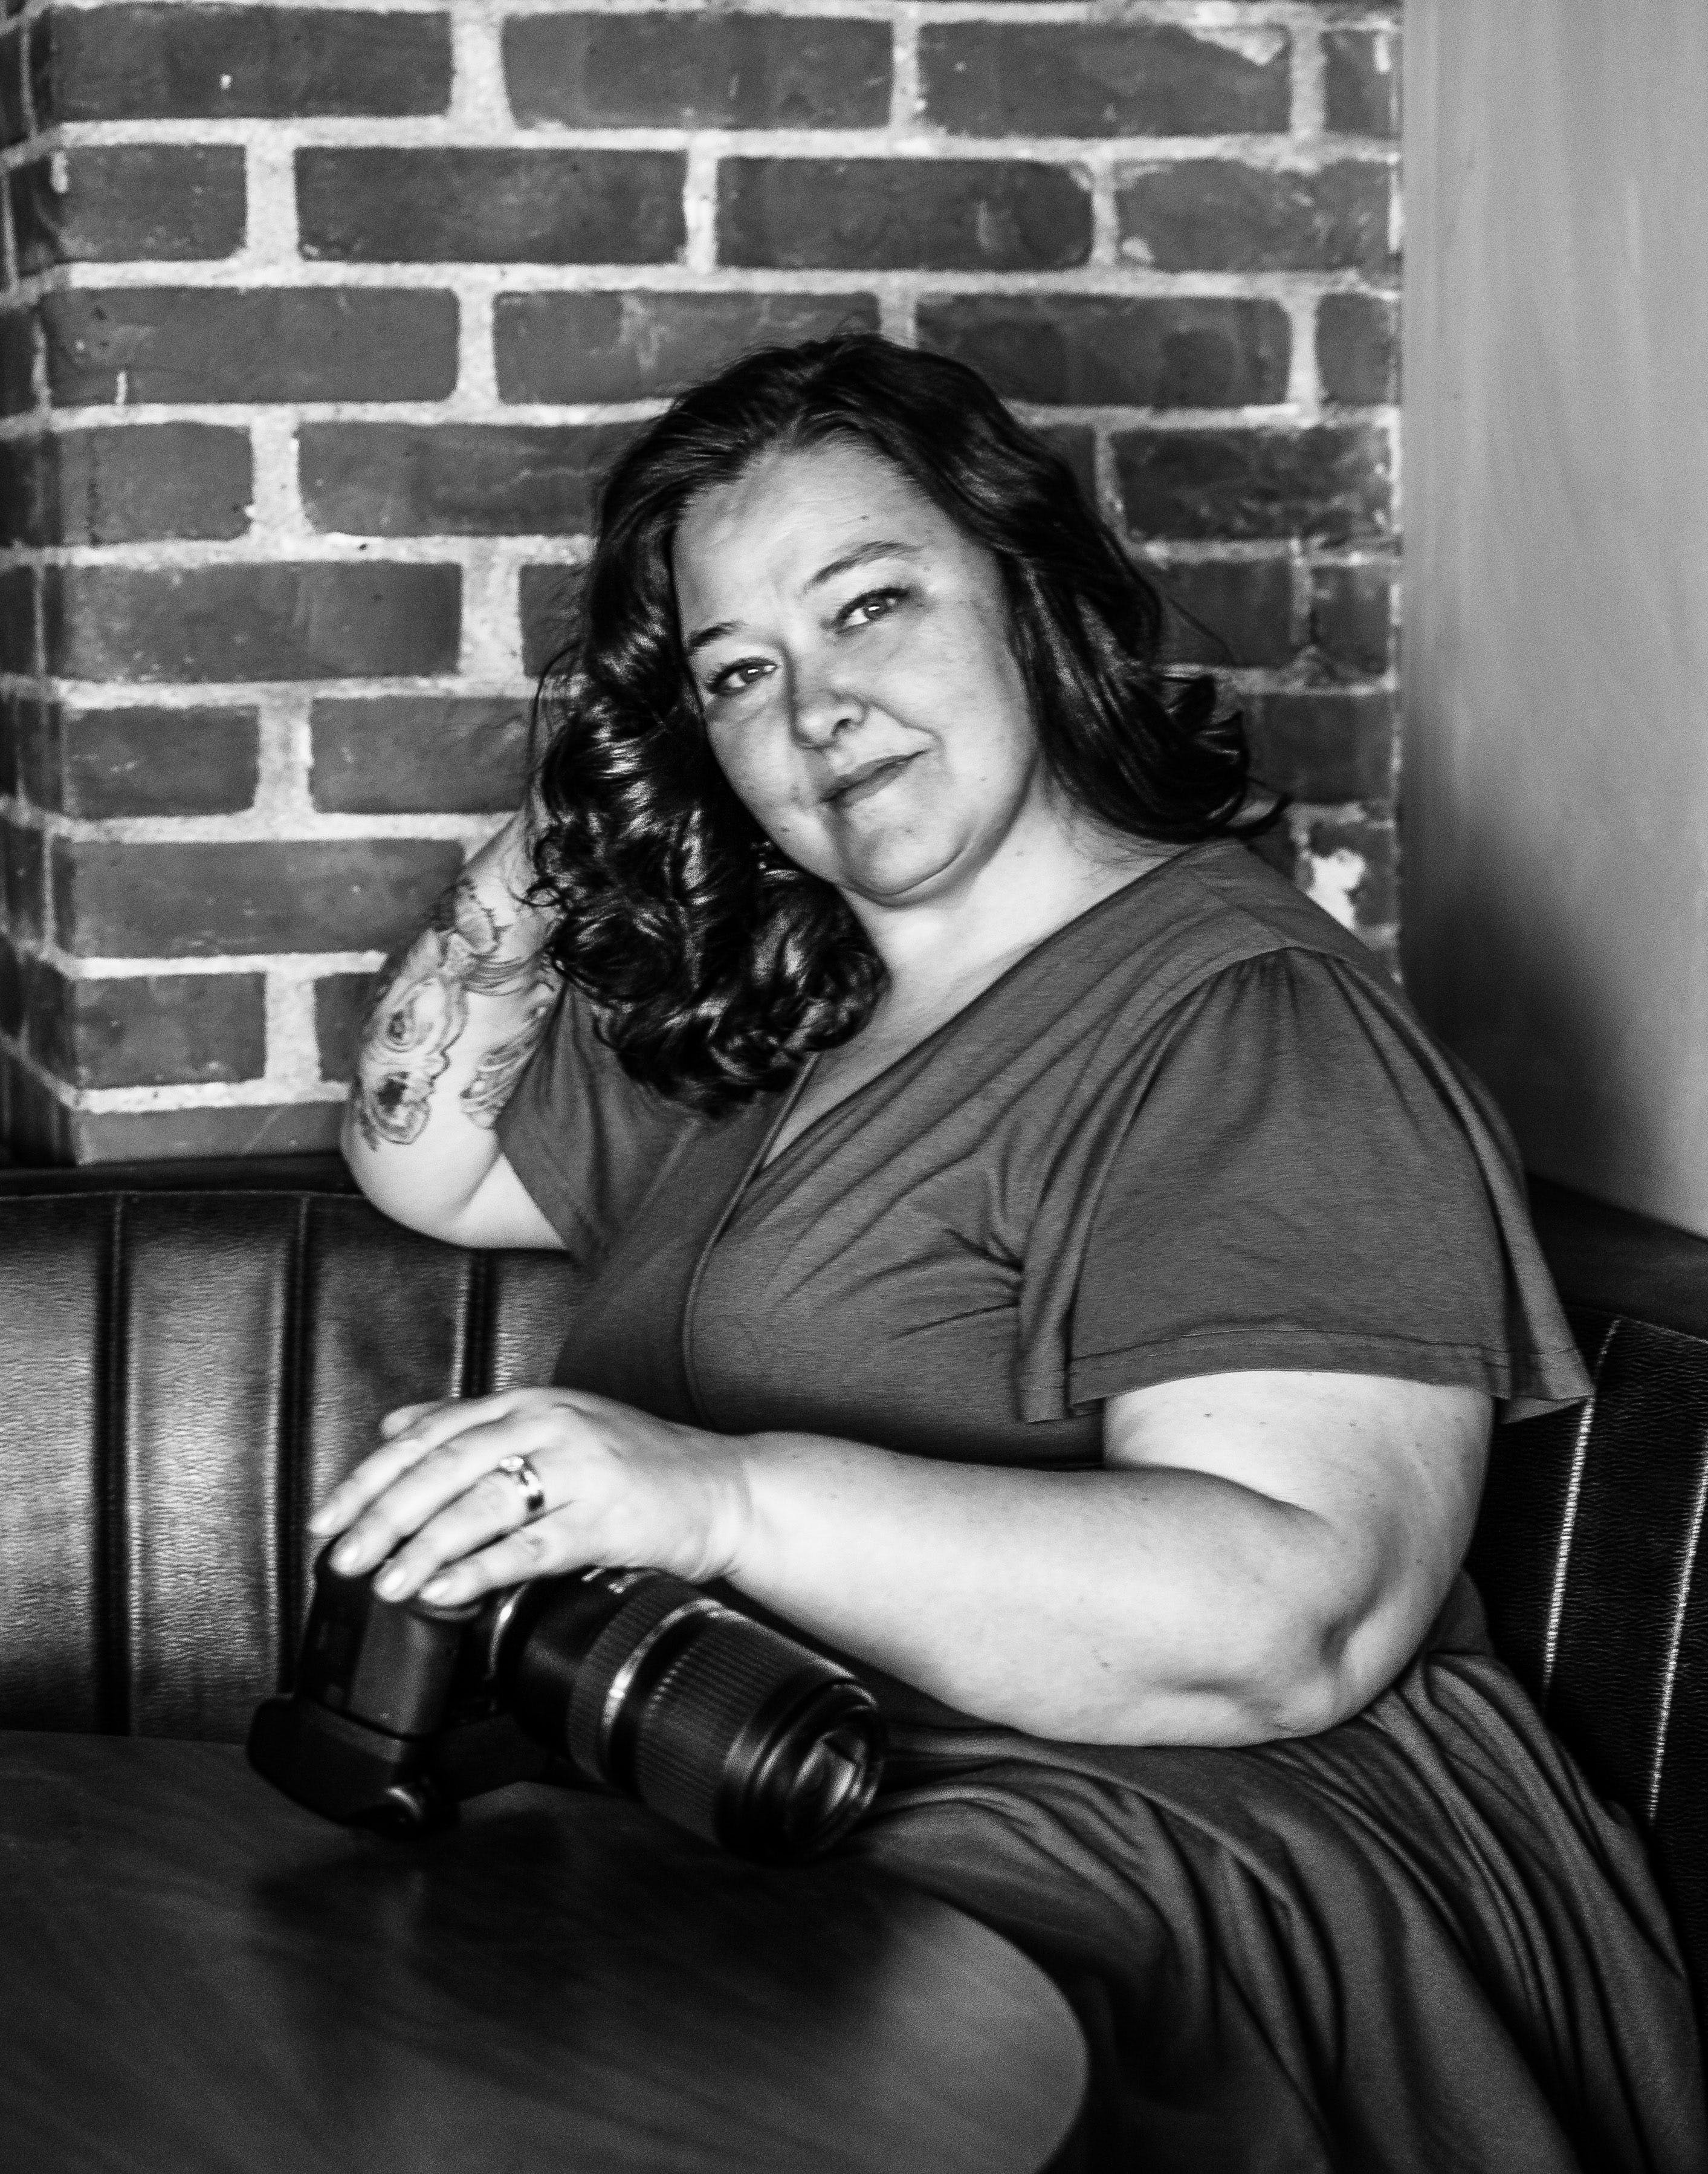 Free stock photo of bbw, black and white, camera, vintage beauty